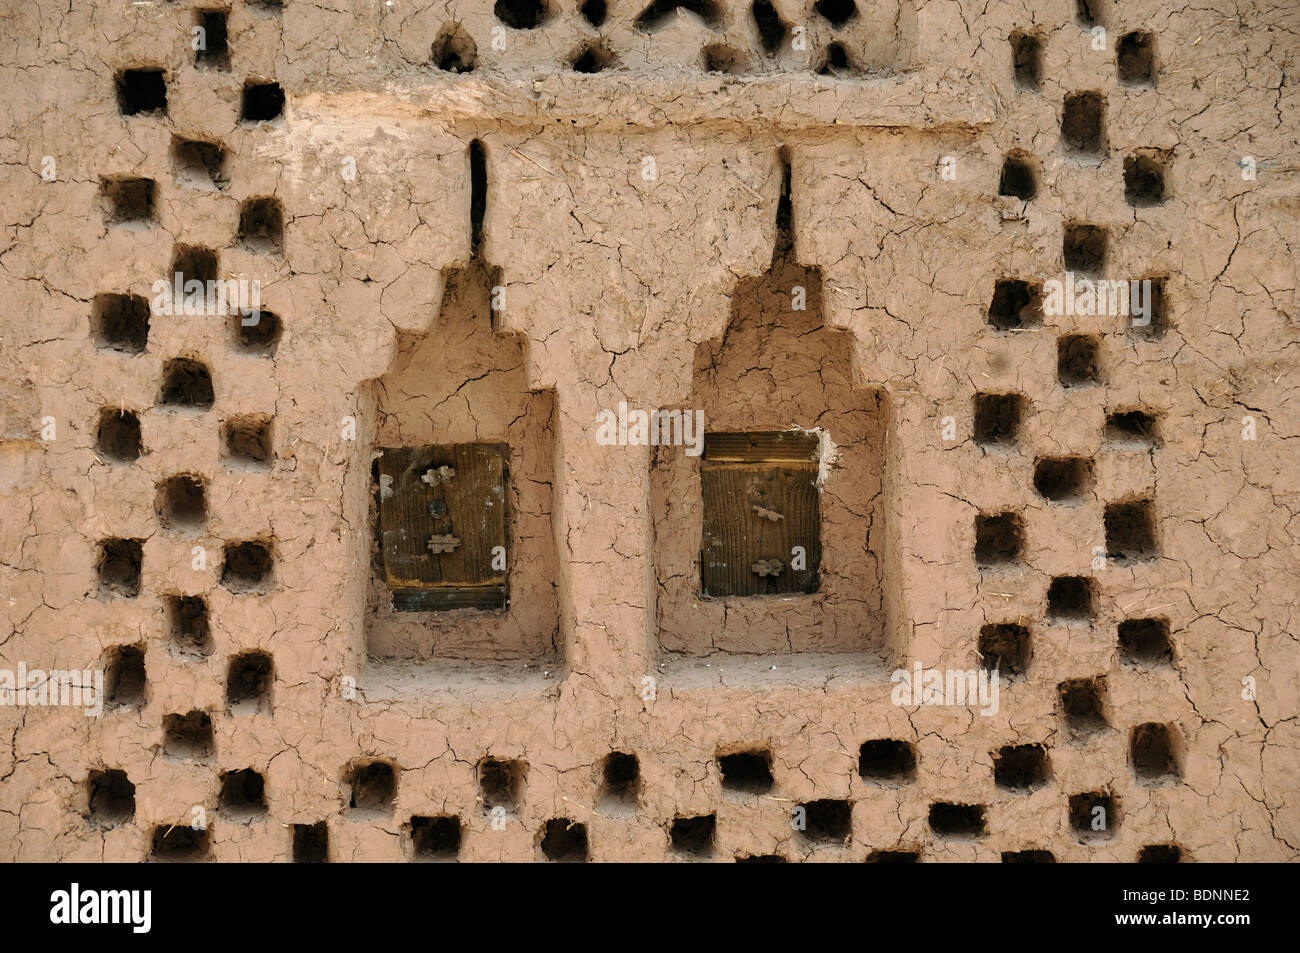 Decorative Adobe Mud Earth Window Openings At Benhaddou Kasr or Kasbah, Morocco - Stock Image